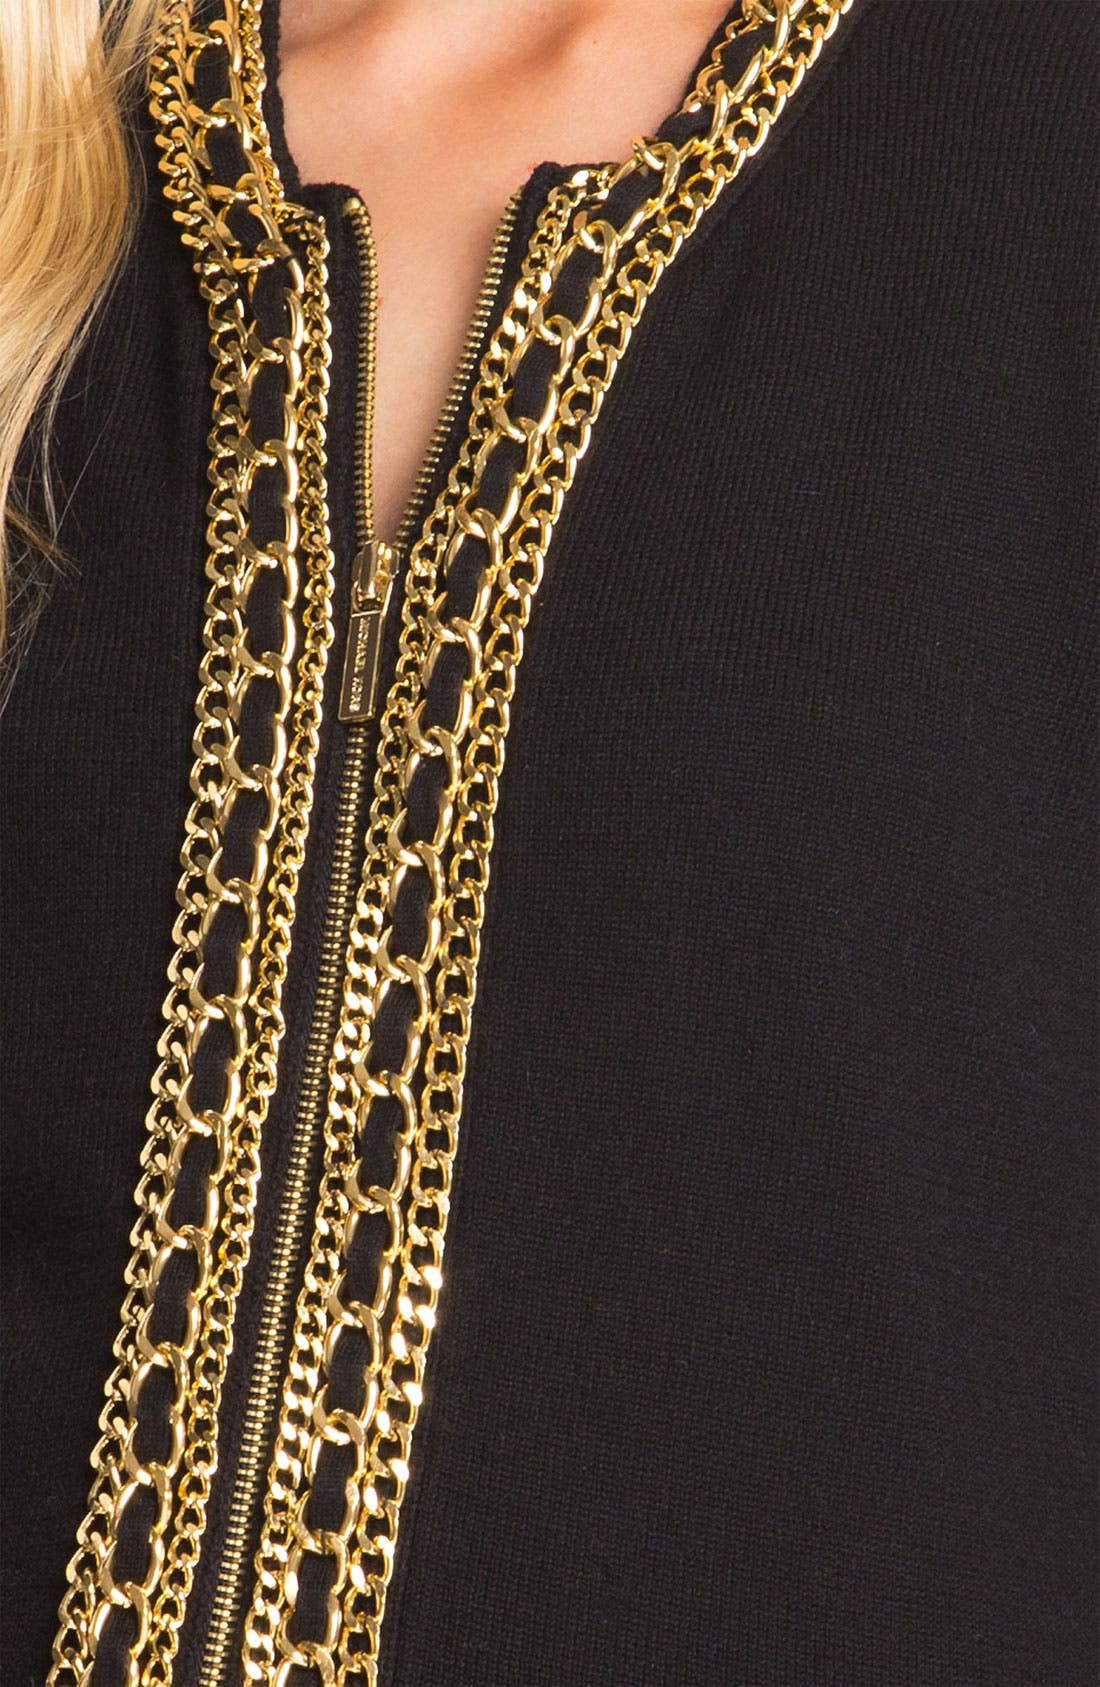 Alternate Image 3  - MICHAEL Michael Kors Chain Placket Cardigan (Petite)